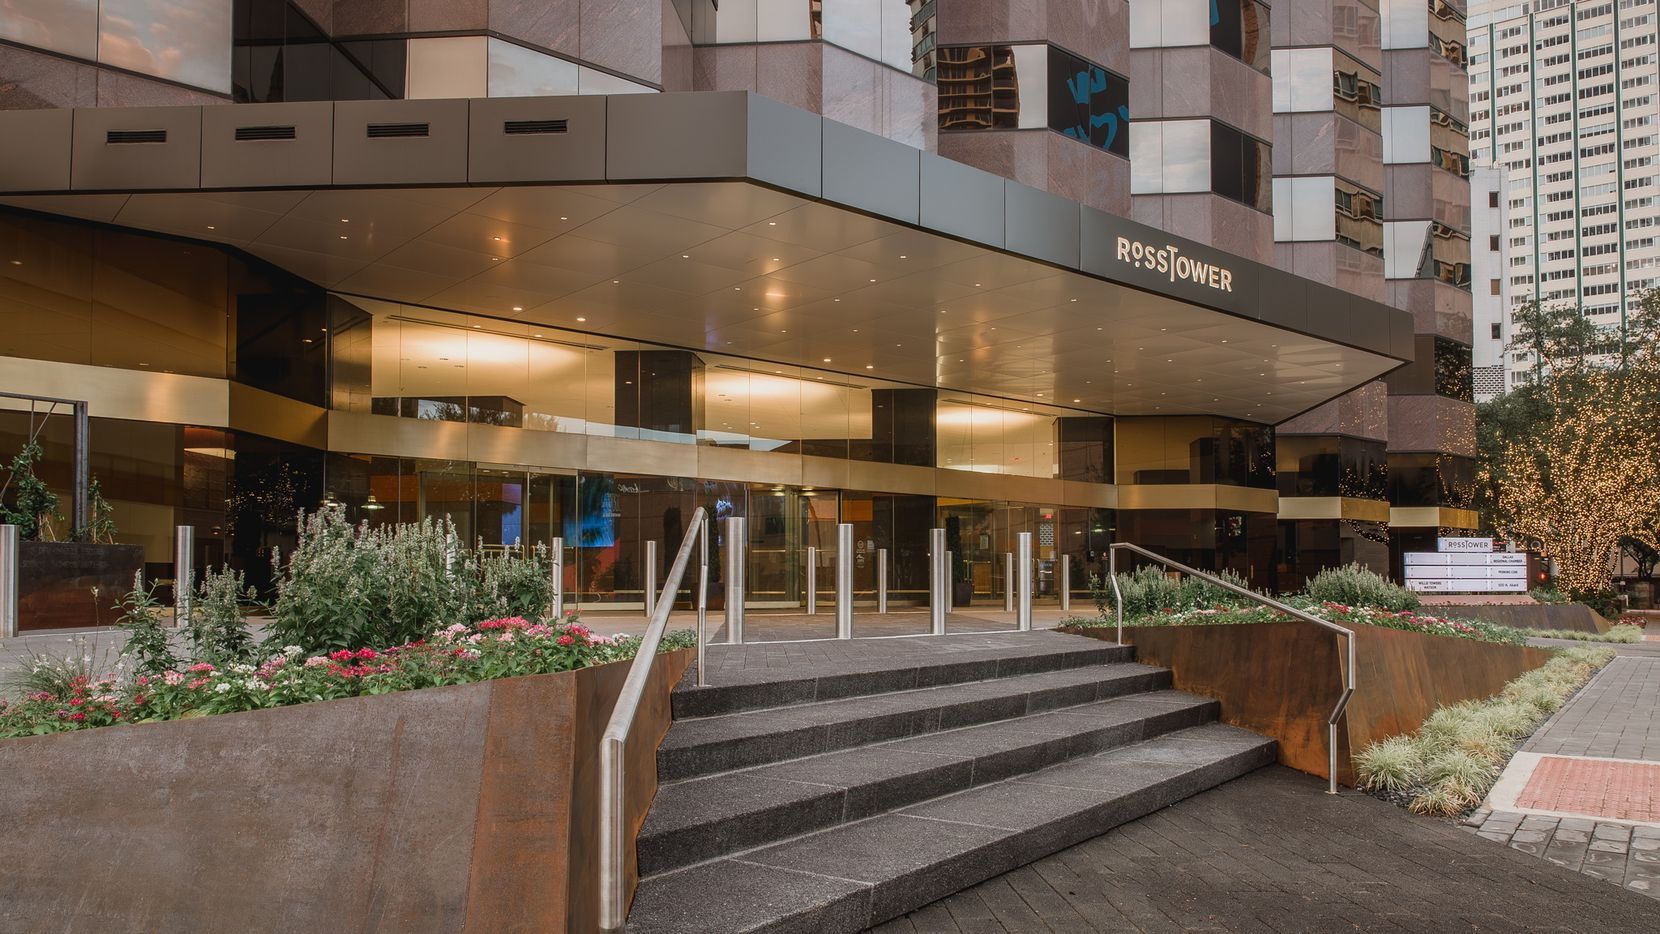 Ross Tower's owners just completed a renovation of the 1980s high-rise.